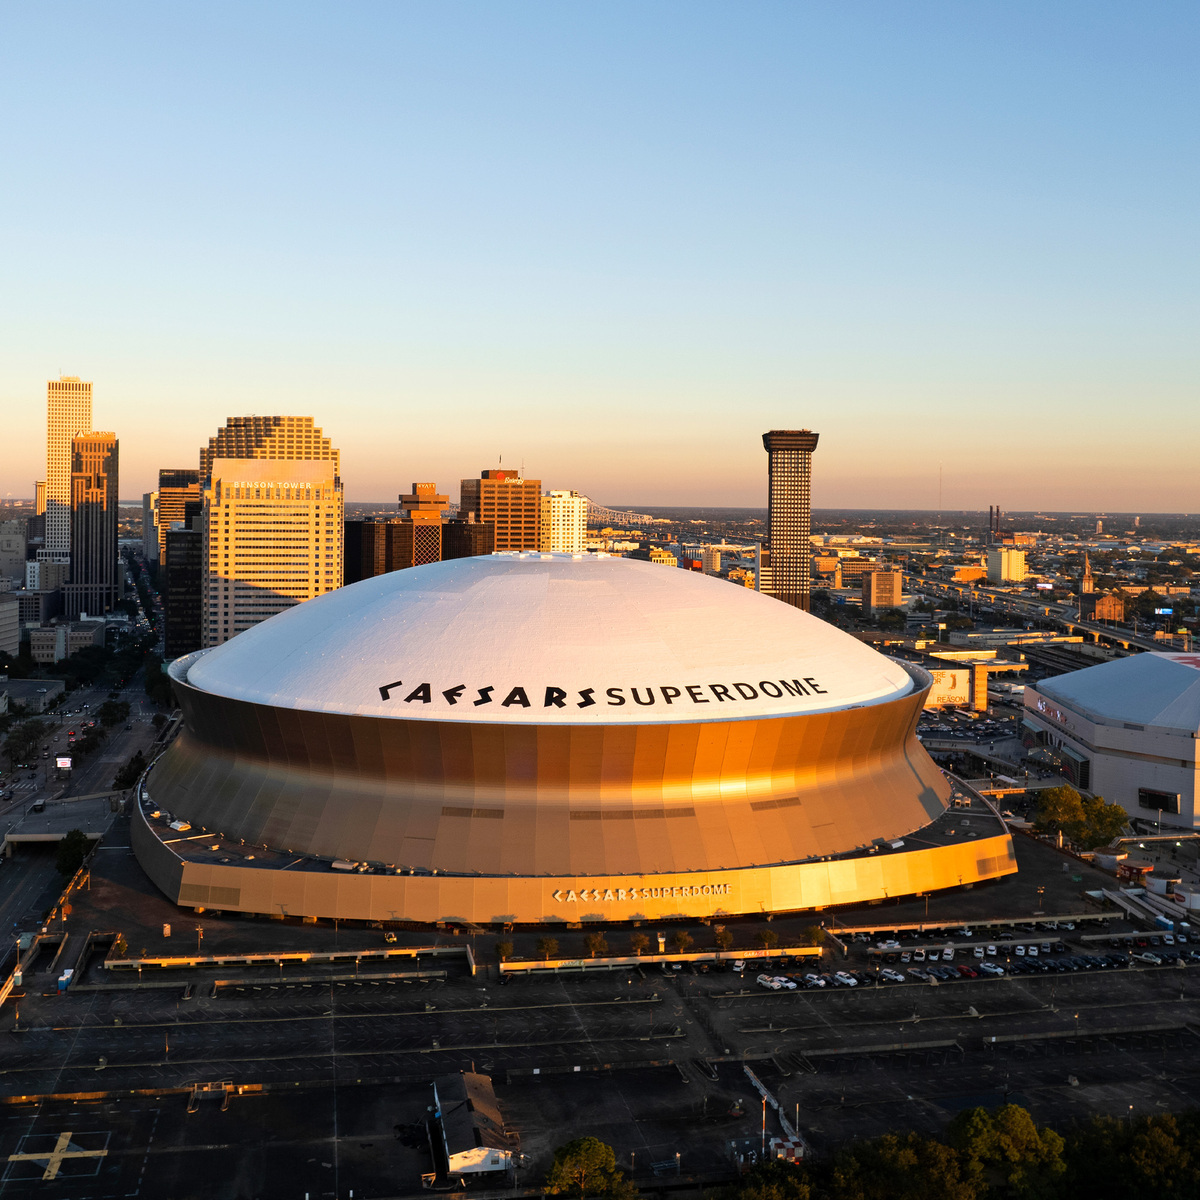 Saints vs Falcons Tickets, Nov 10 in New Orleans | SeatGeek